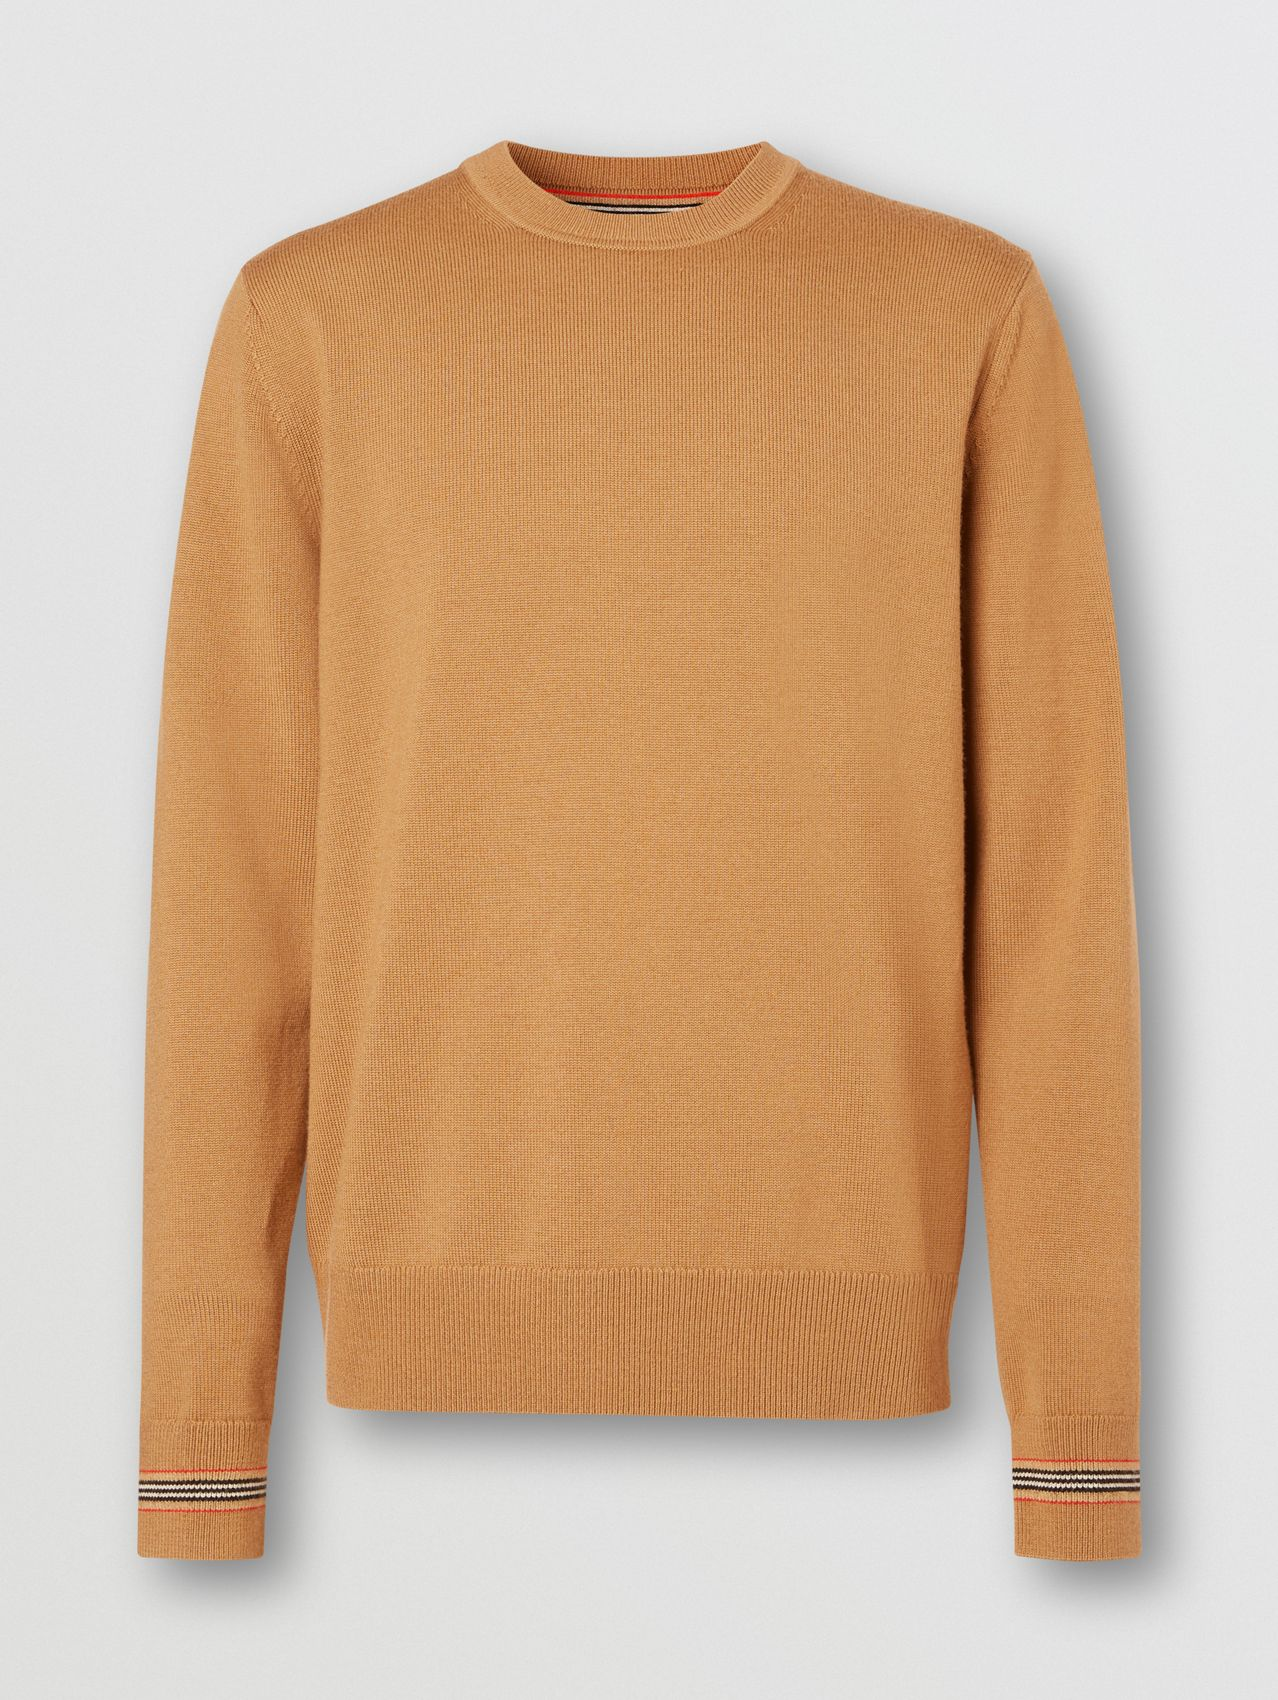 Icon Stripe Trim Merino Wool Sweater in Camel